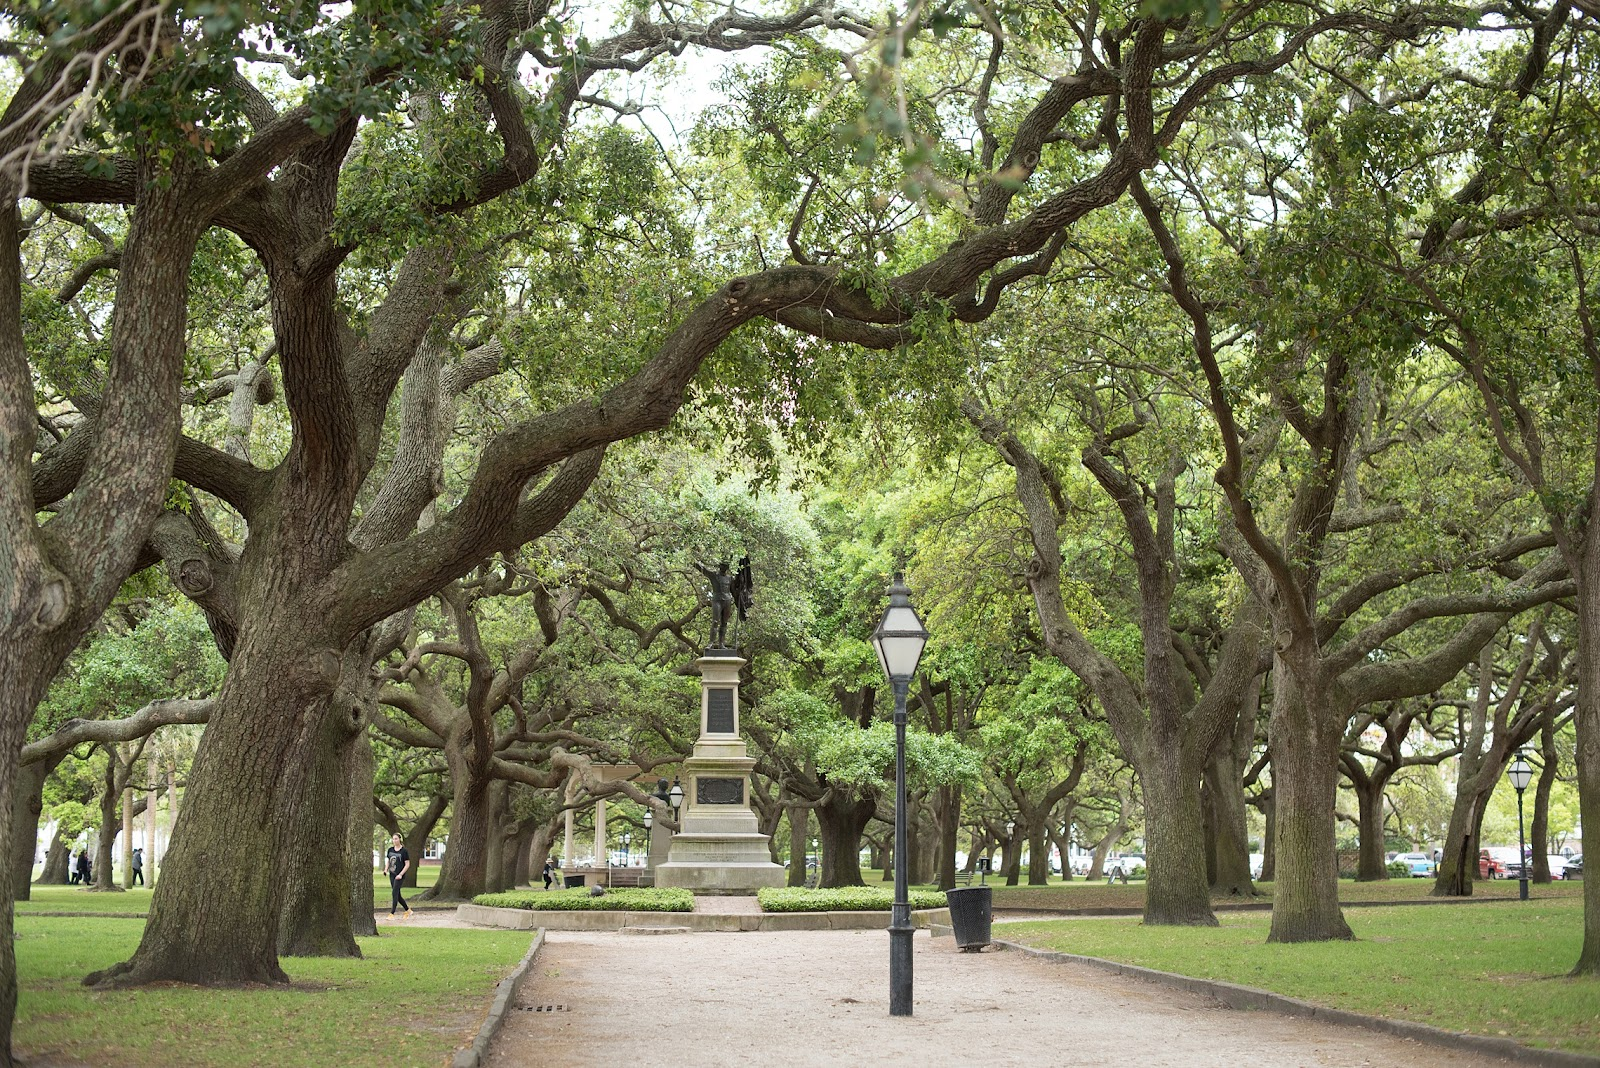 Most Charming City in the South: a Photo Tour of Downtown Charleston